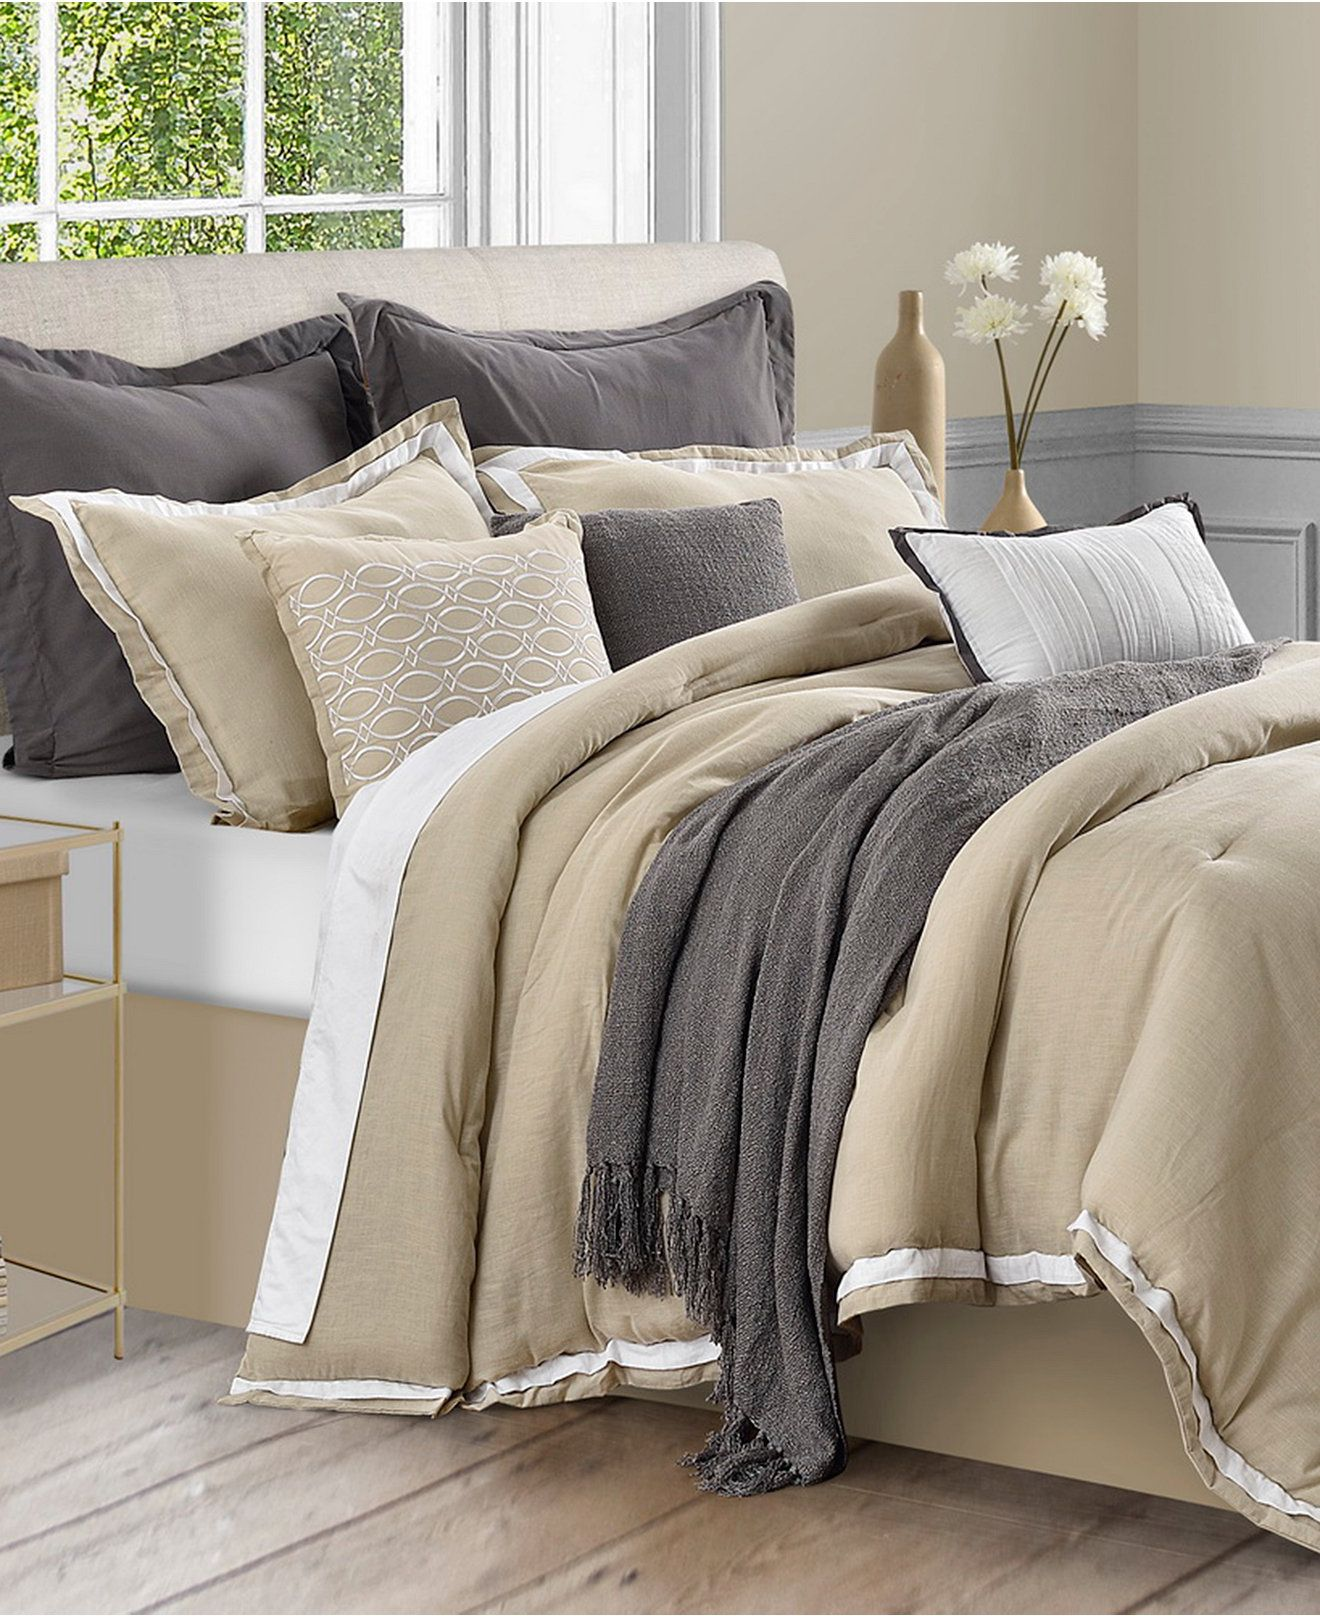 bedspread sets bed queen grey linens white ruffle ruffled comforter bedroom linen category bedding set